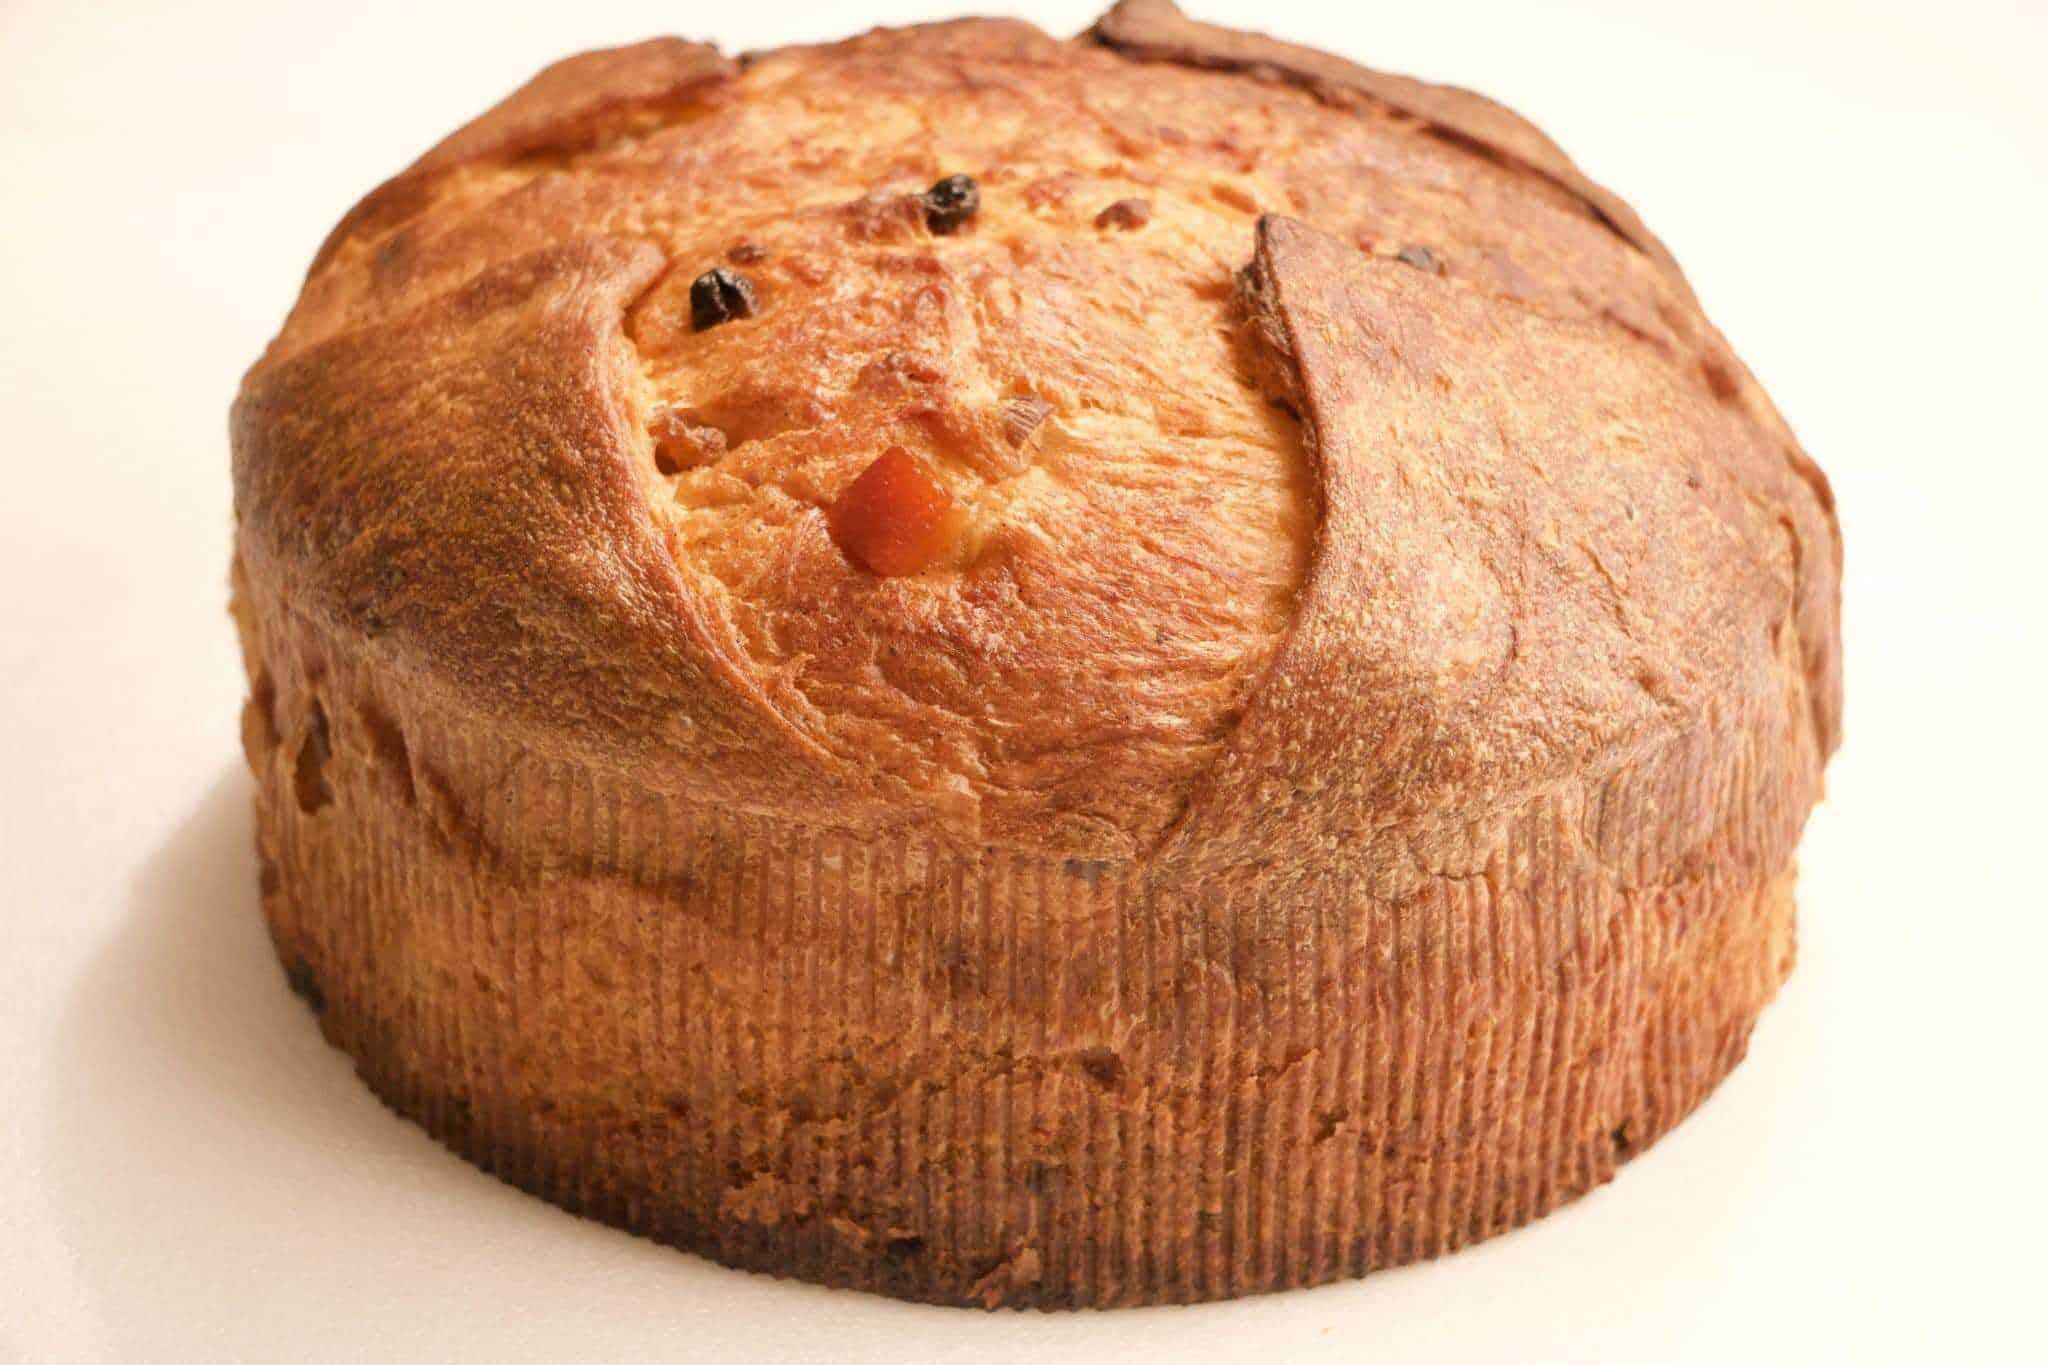 Image of the traditional Italian Panettone made with yeast